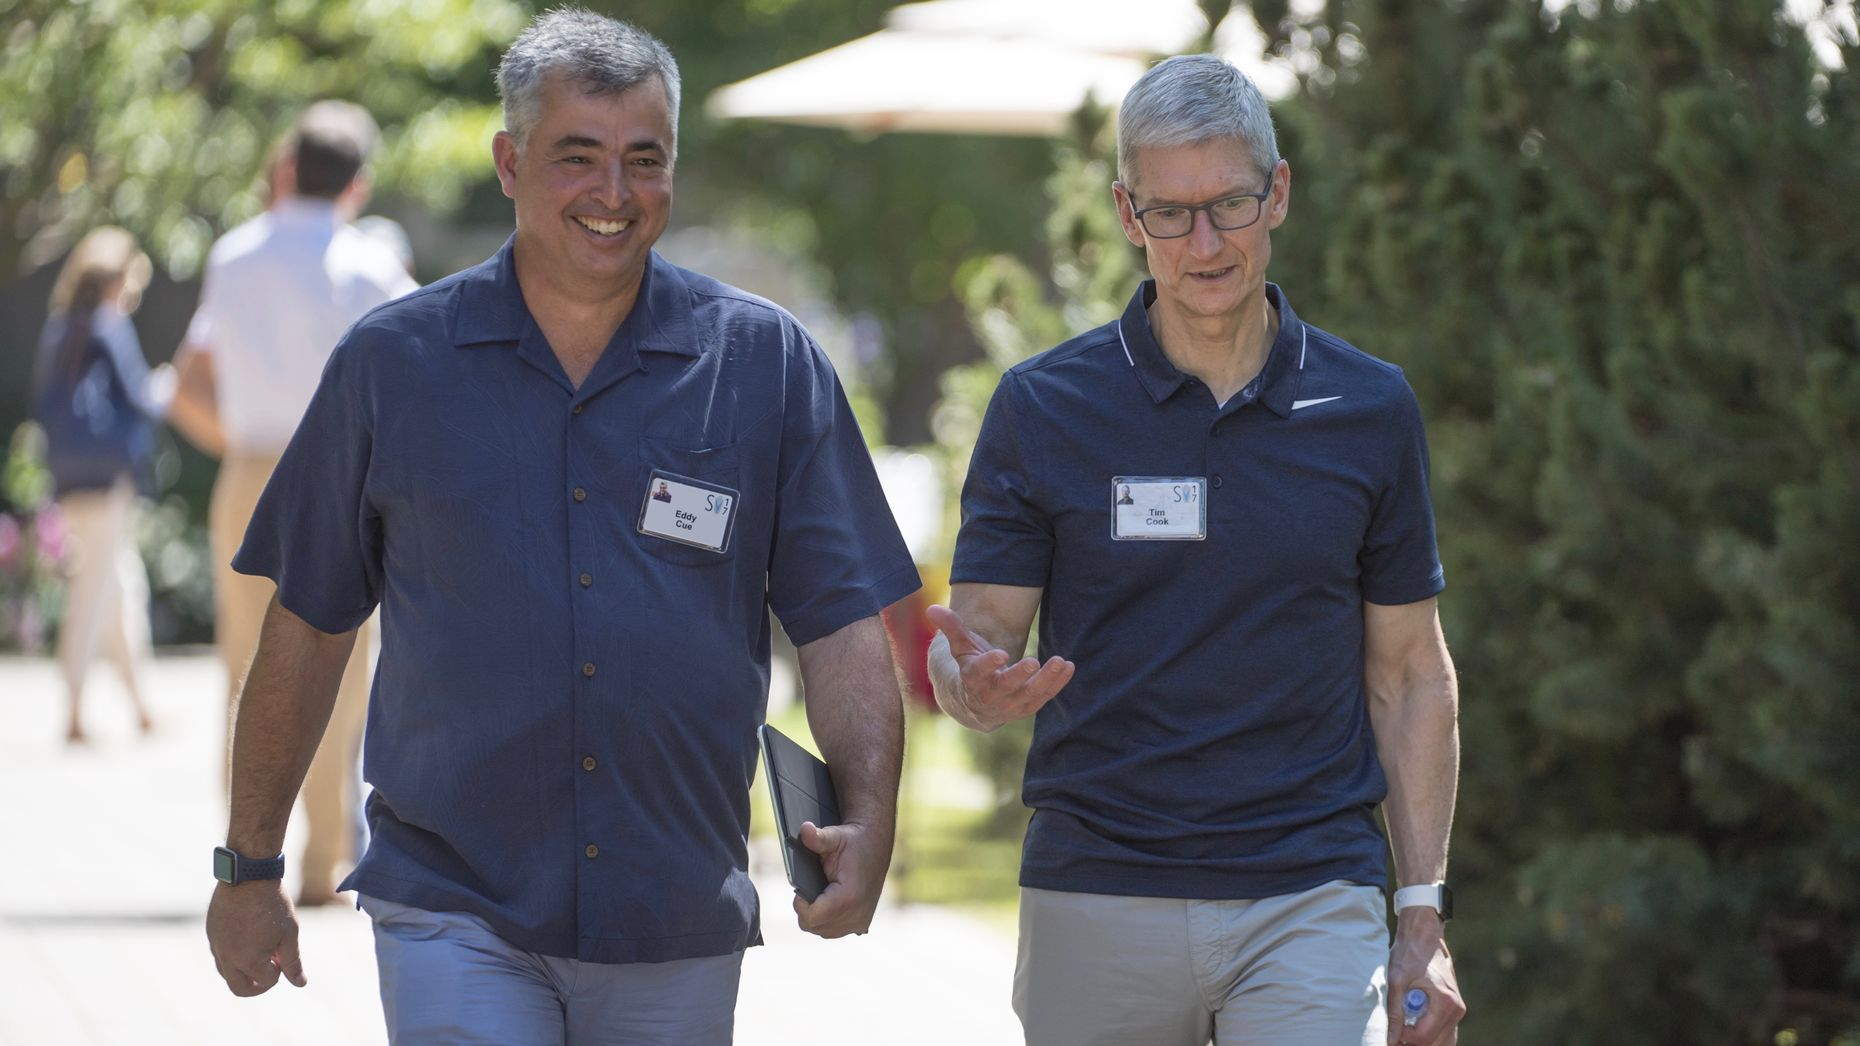 Apple executives Eddy Cue and Tim Cook. Photo by Bloomberg.